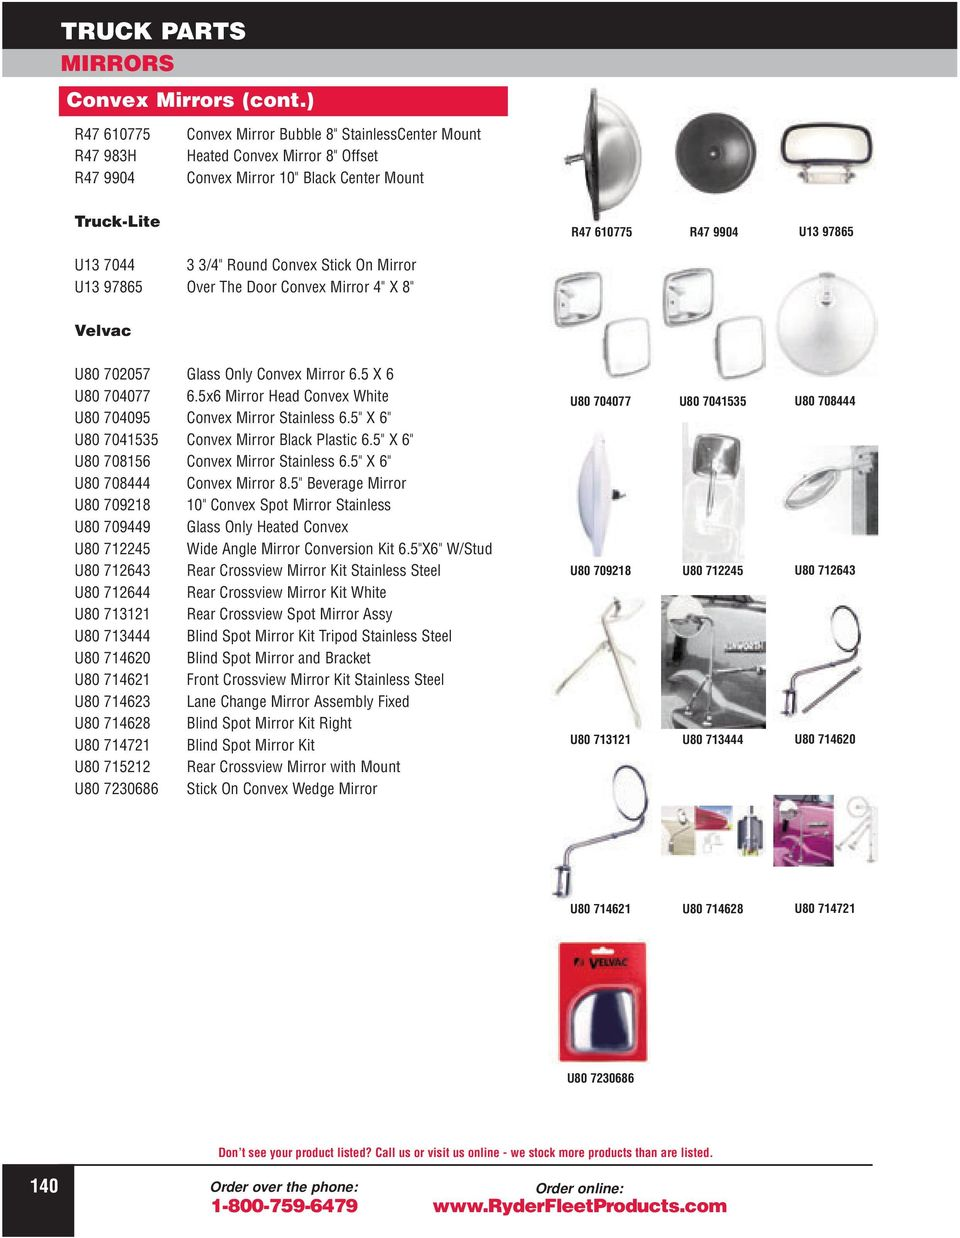 Truck Parts Mirrors Convex Grote Pdf Wiring Diagram Heated Mirror U13 97865 Over The Door 4 X 8 R47 610775